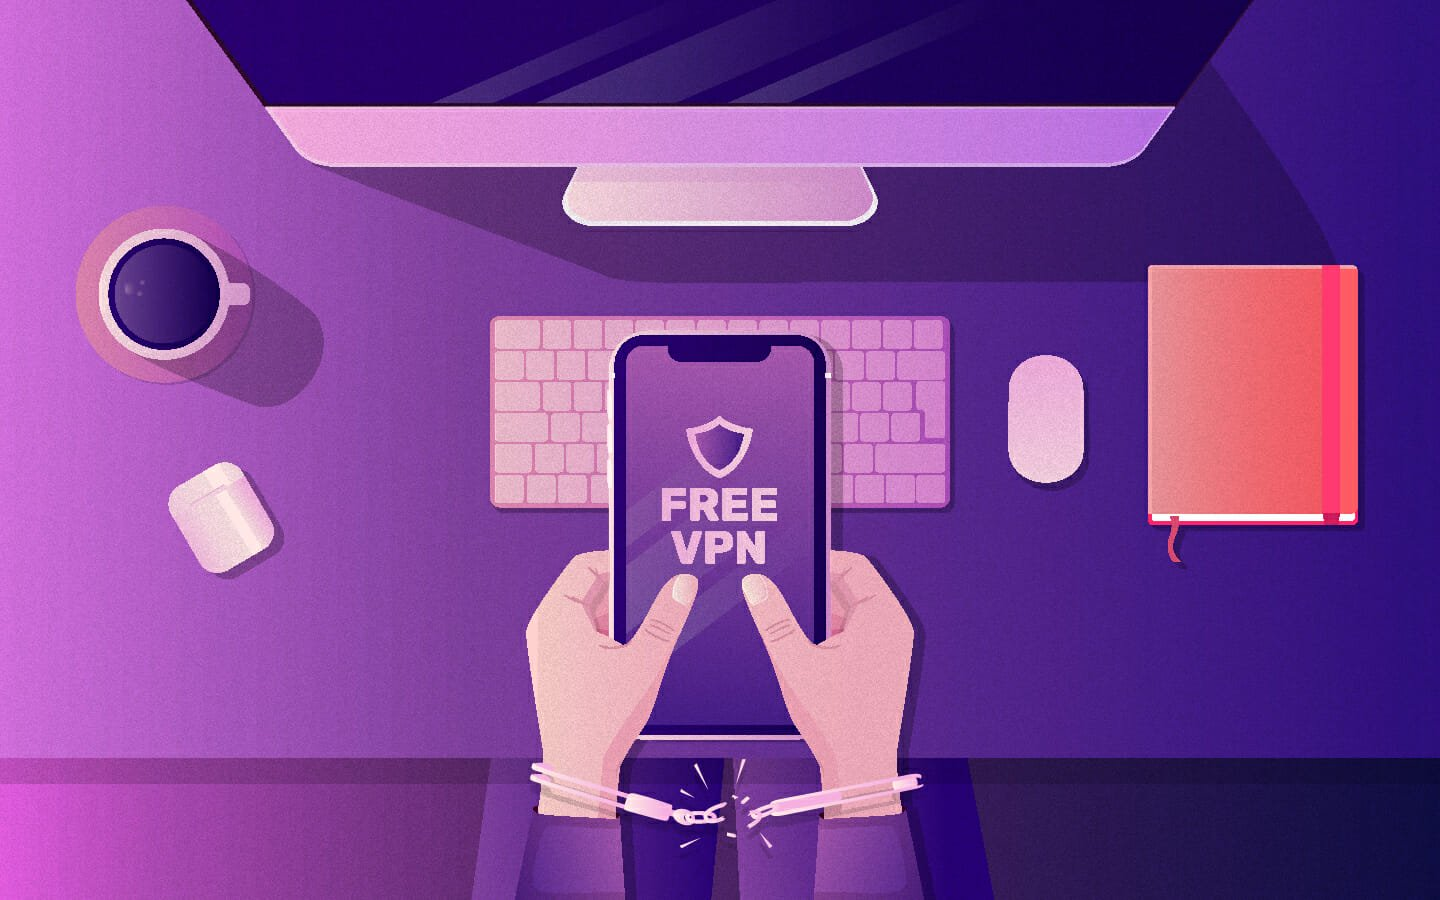 What's the Catch With Free VPNs